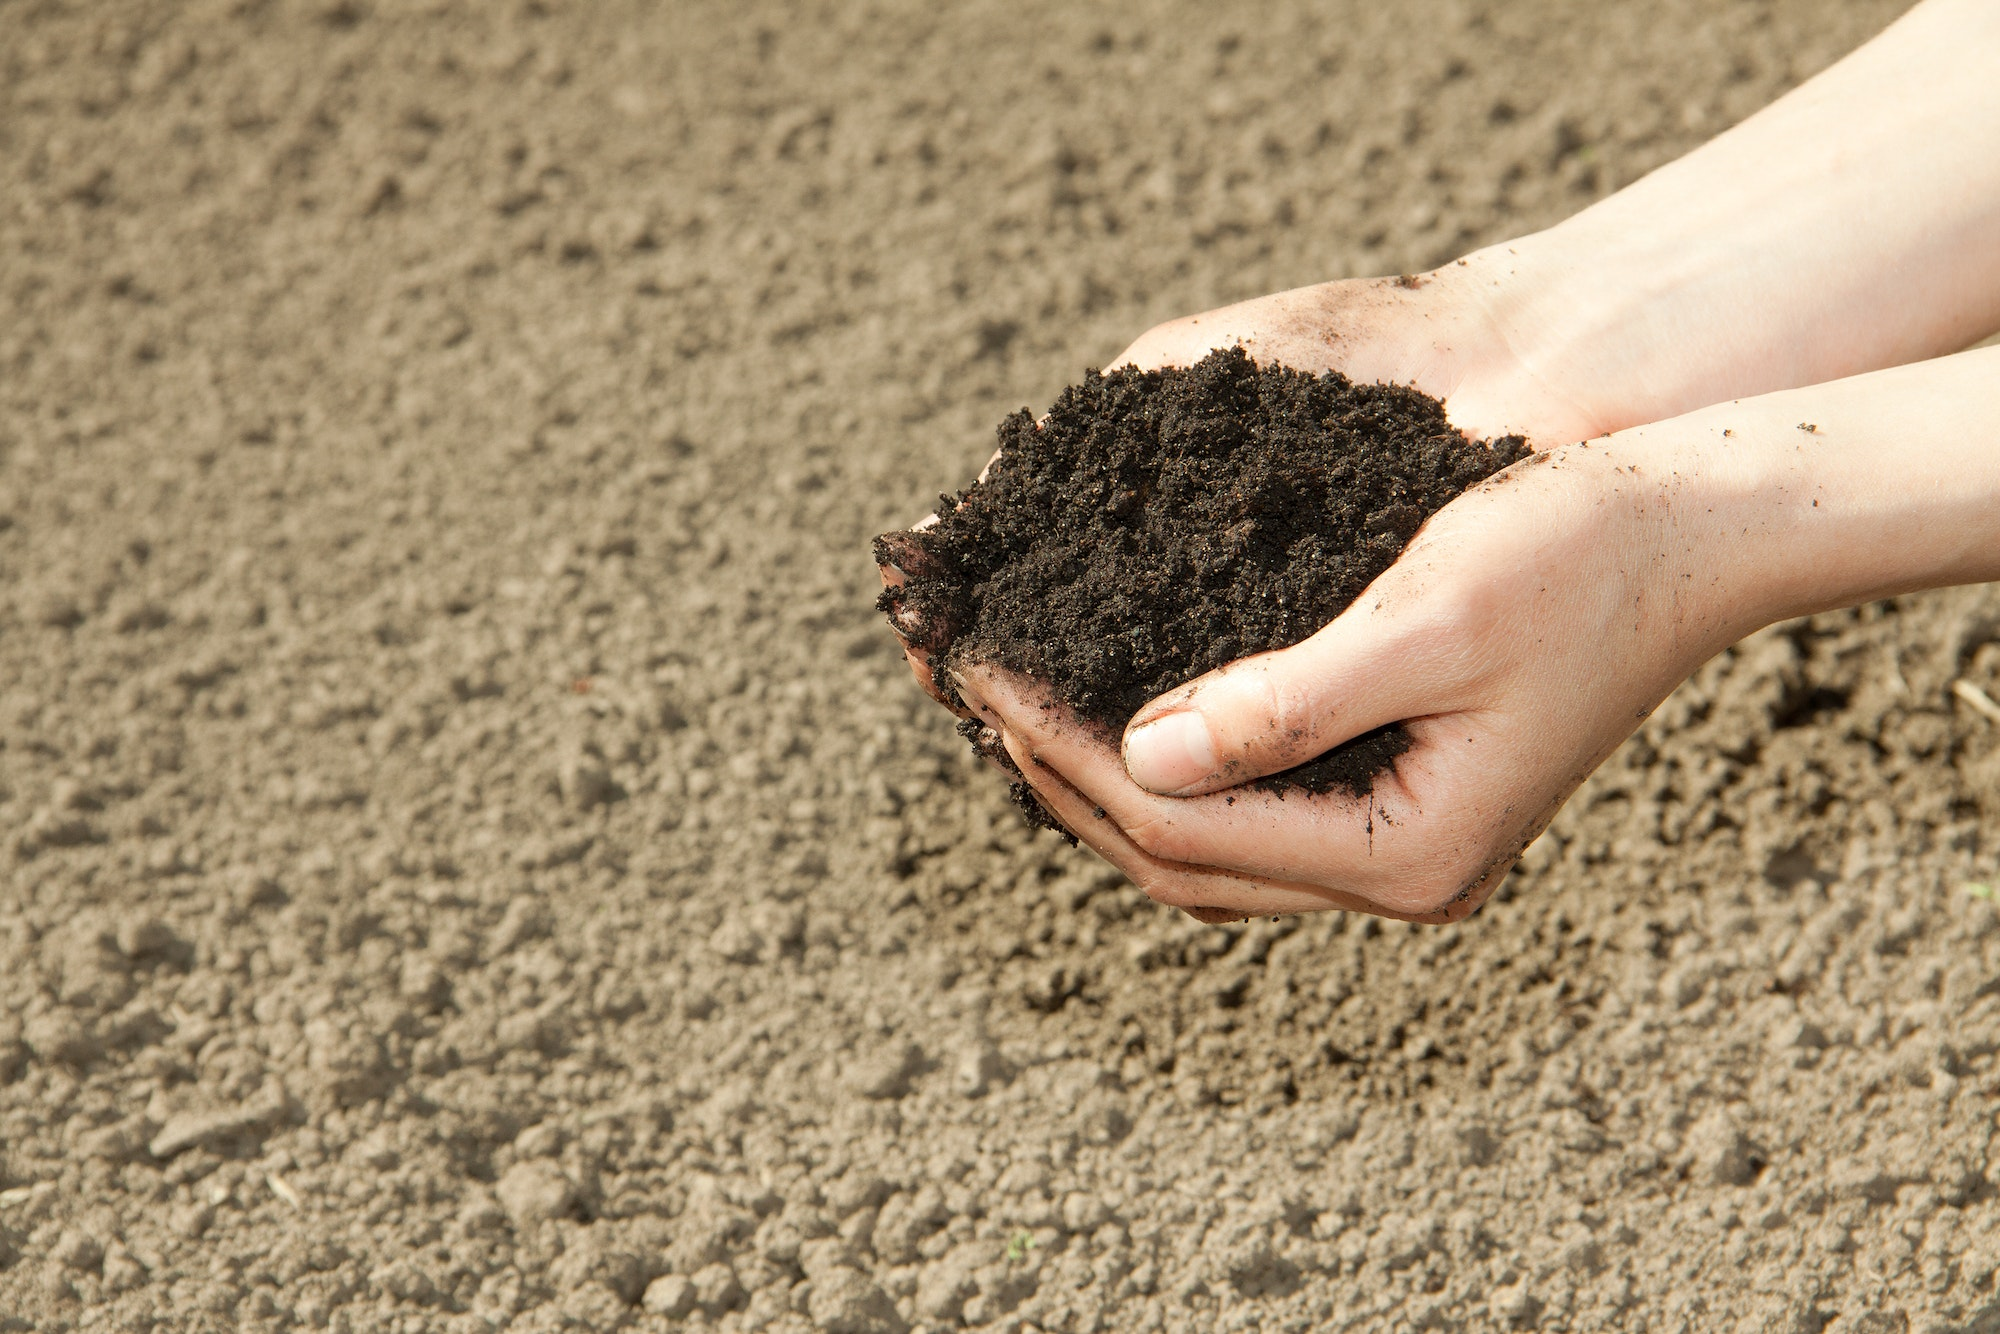 May contain: soil, outdoors, nature, sand, ground, human, and person